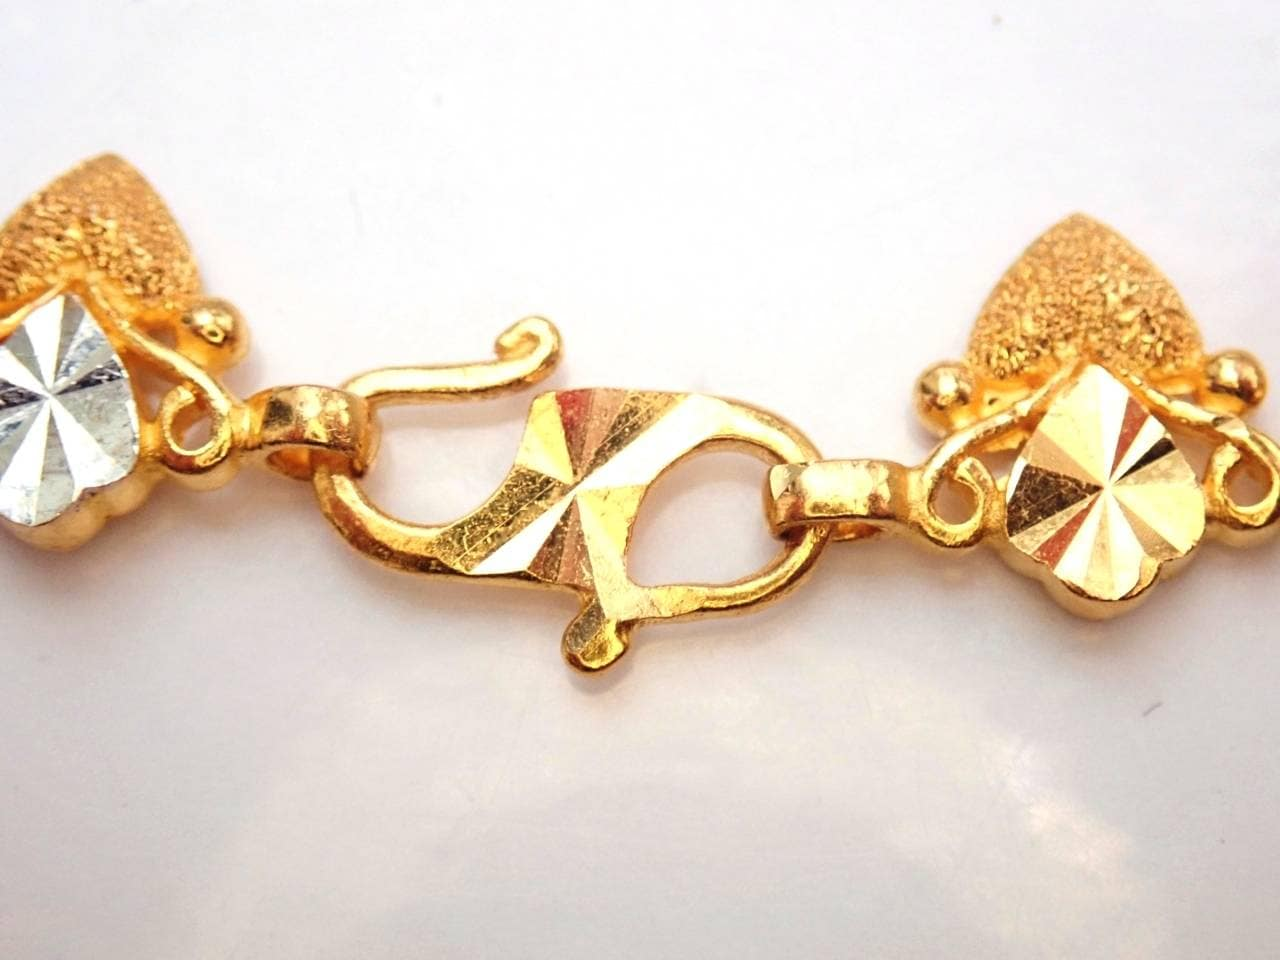 "AA000985 - 22k Solid Gold Fancy Heart Chain Bracelet 73/4""- 15.7gm"